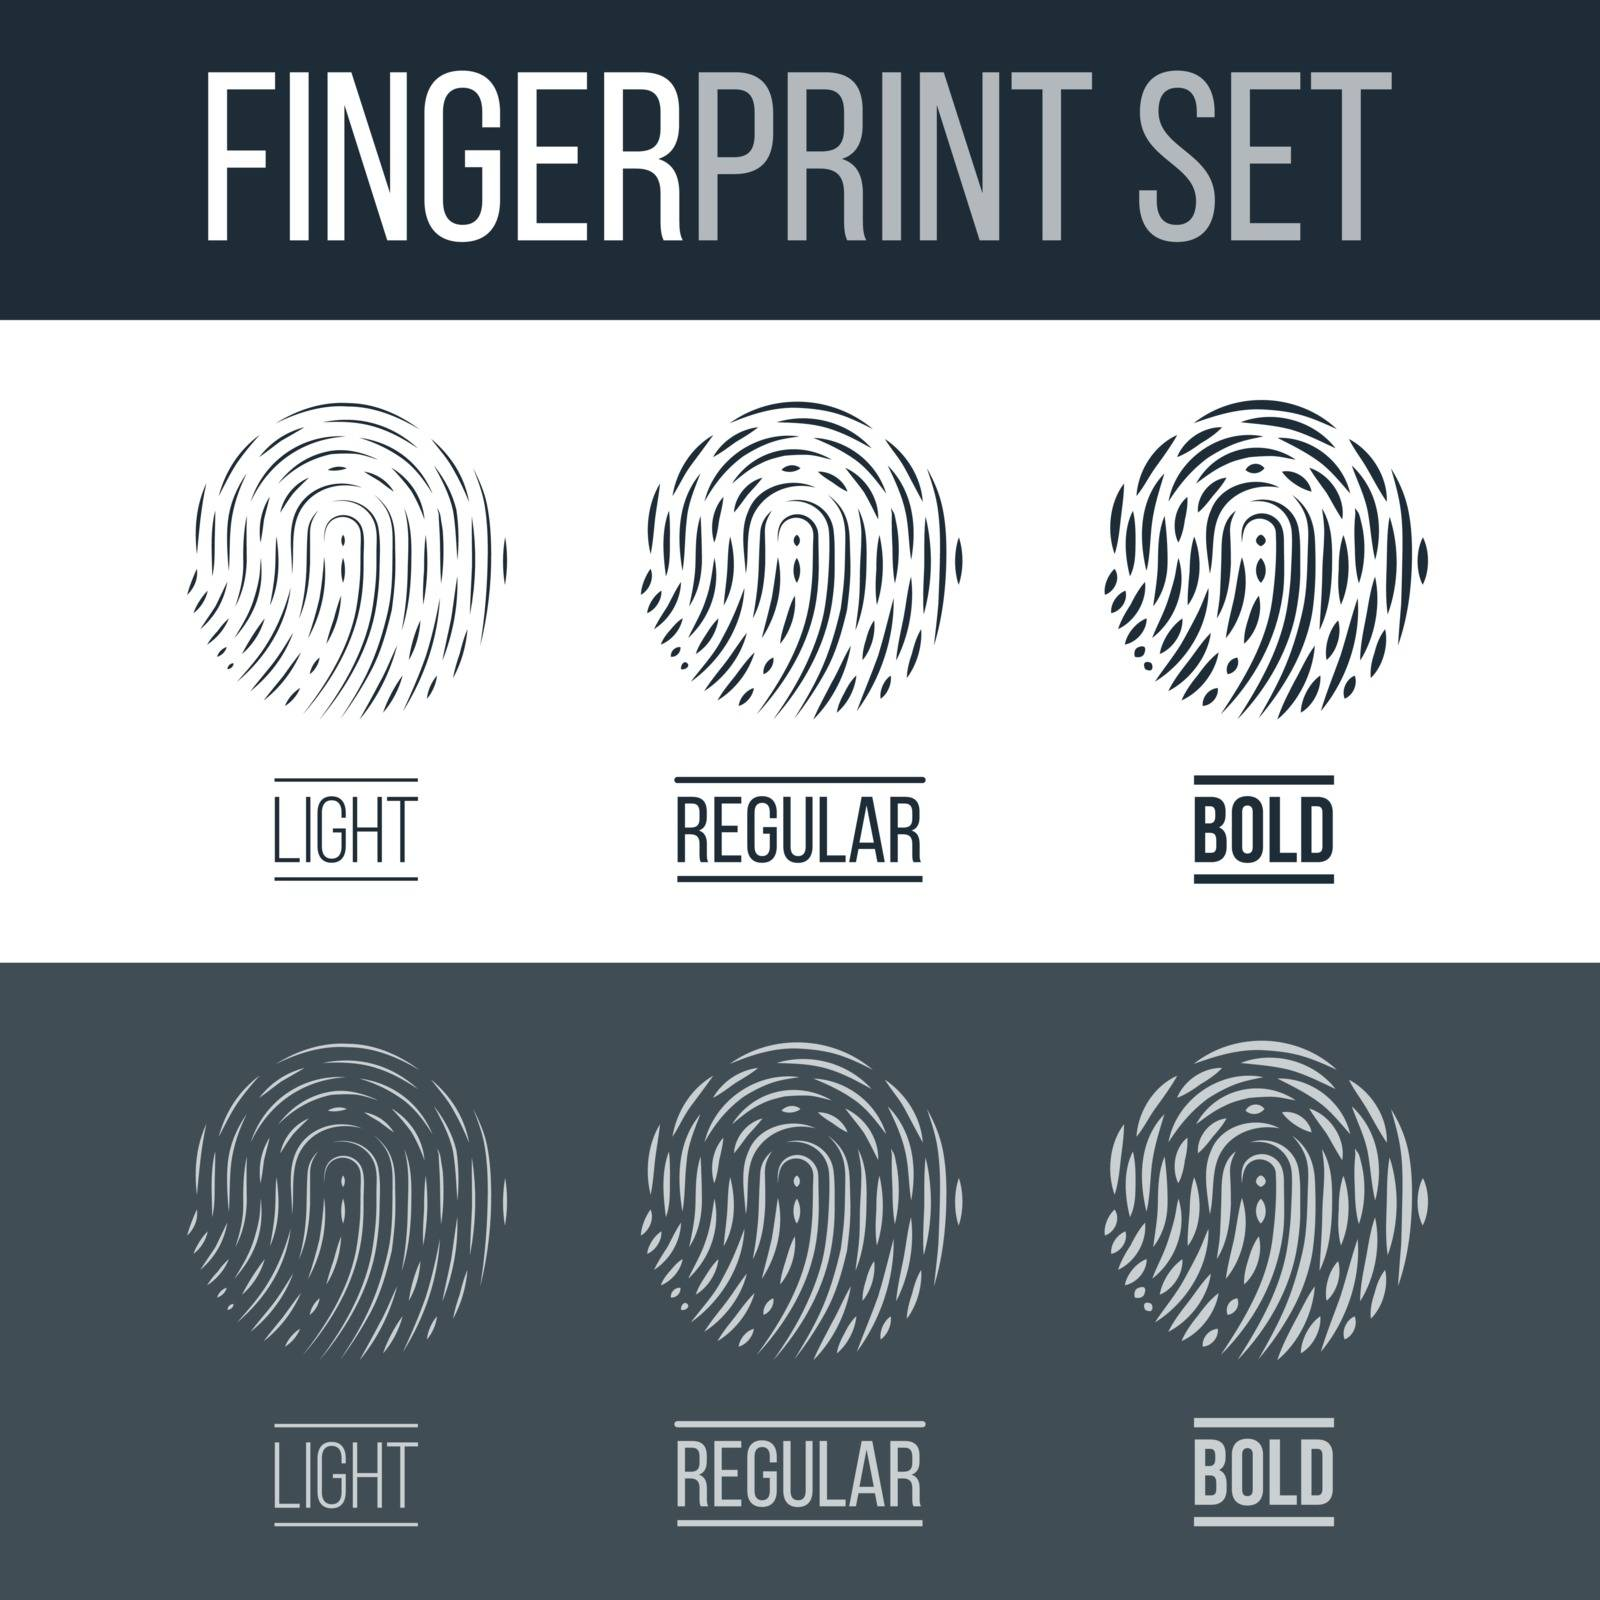 Abstract Fingerprint Icons Set, Future Identification Authorization System on Dark and White Background for Creative Design